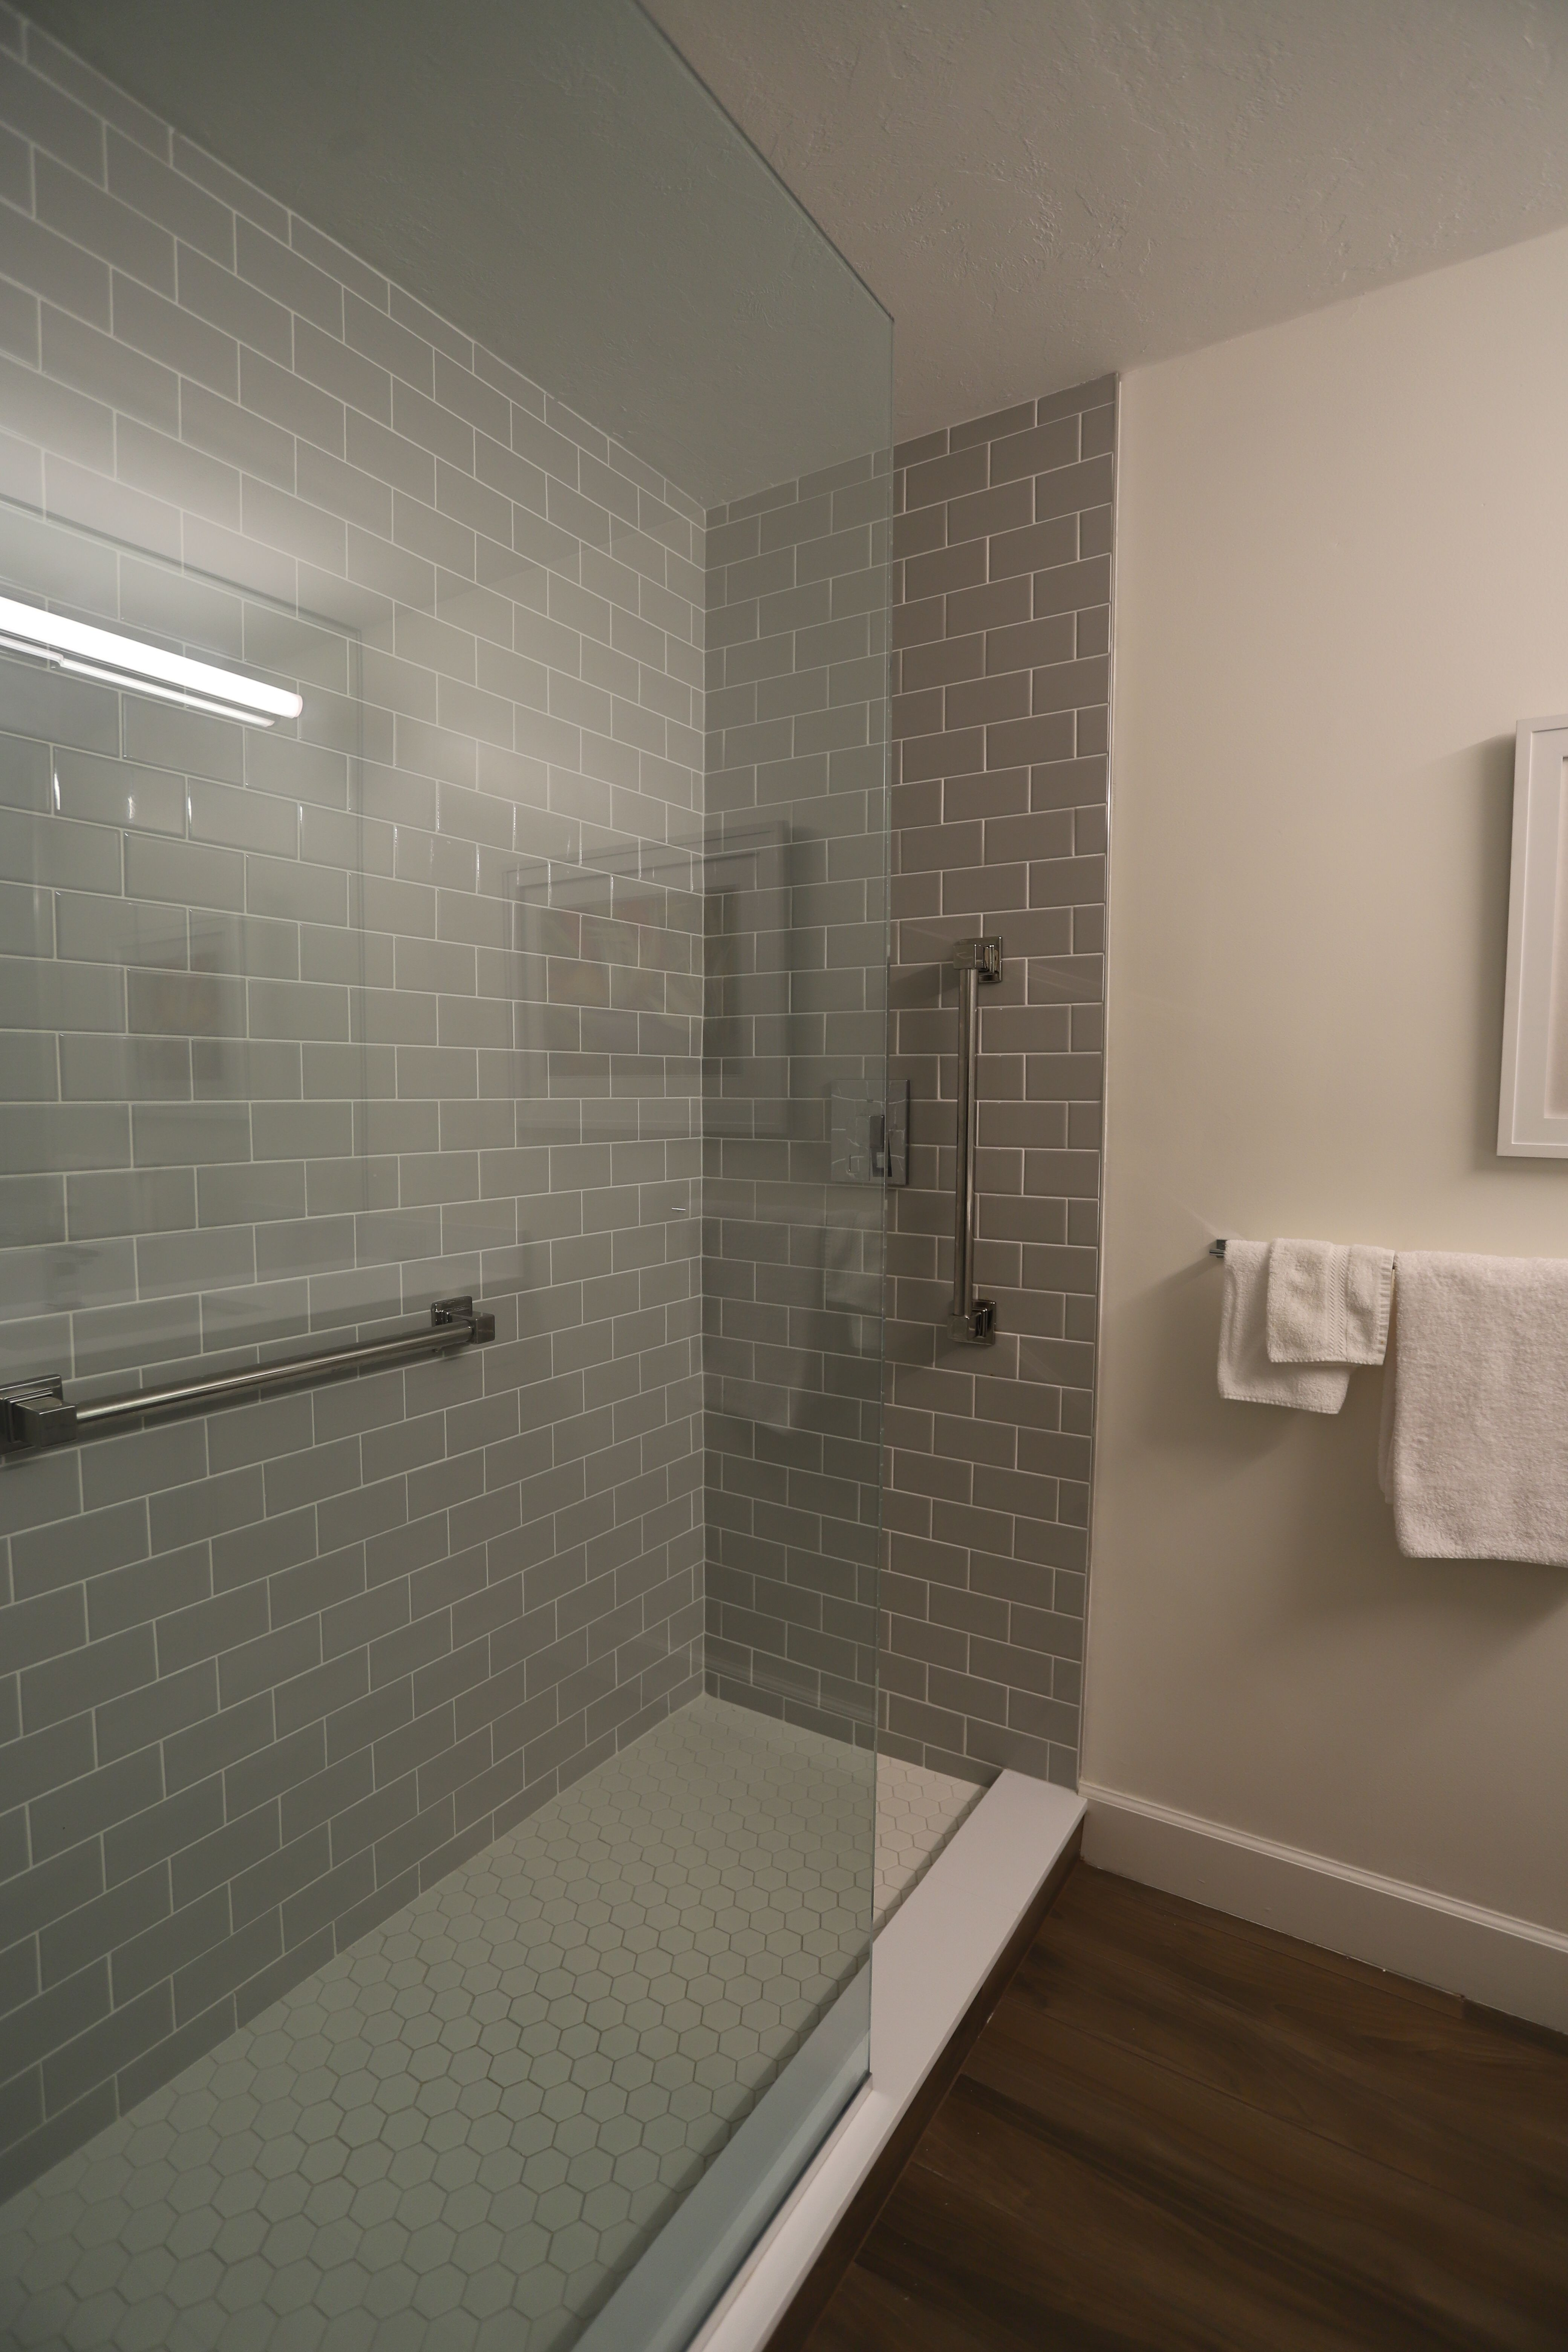 We're a remodeling company servicing Naples, Florida and ...